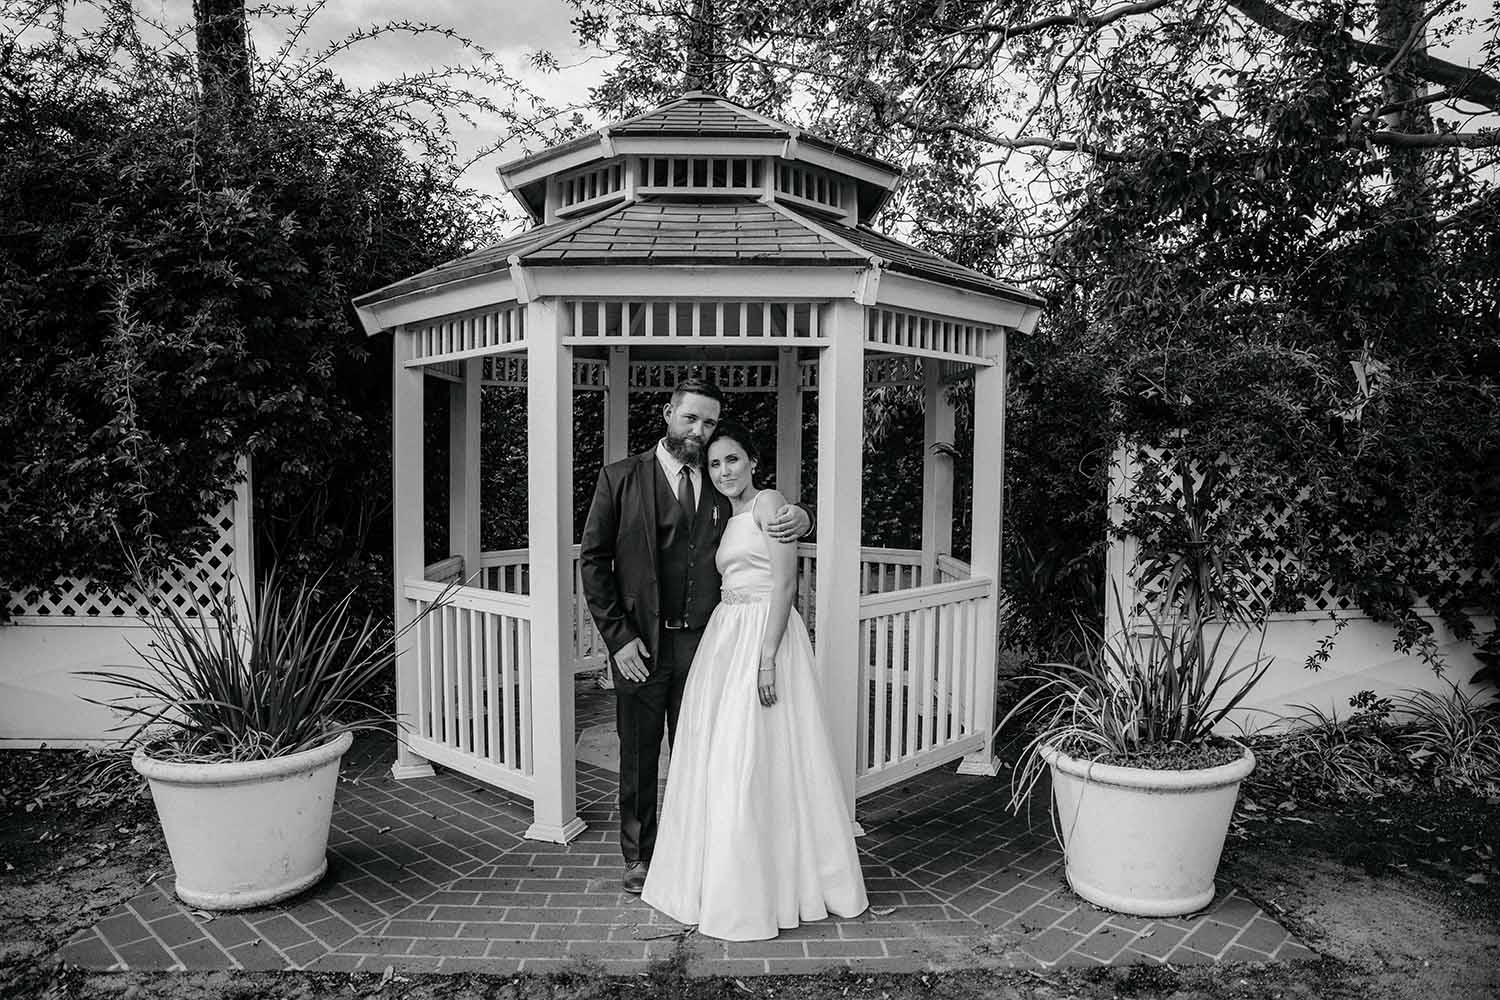 Wedding Photography - couple in front of pergola